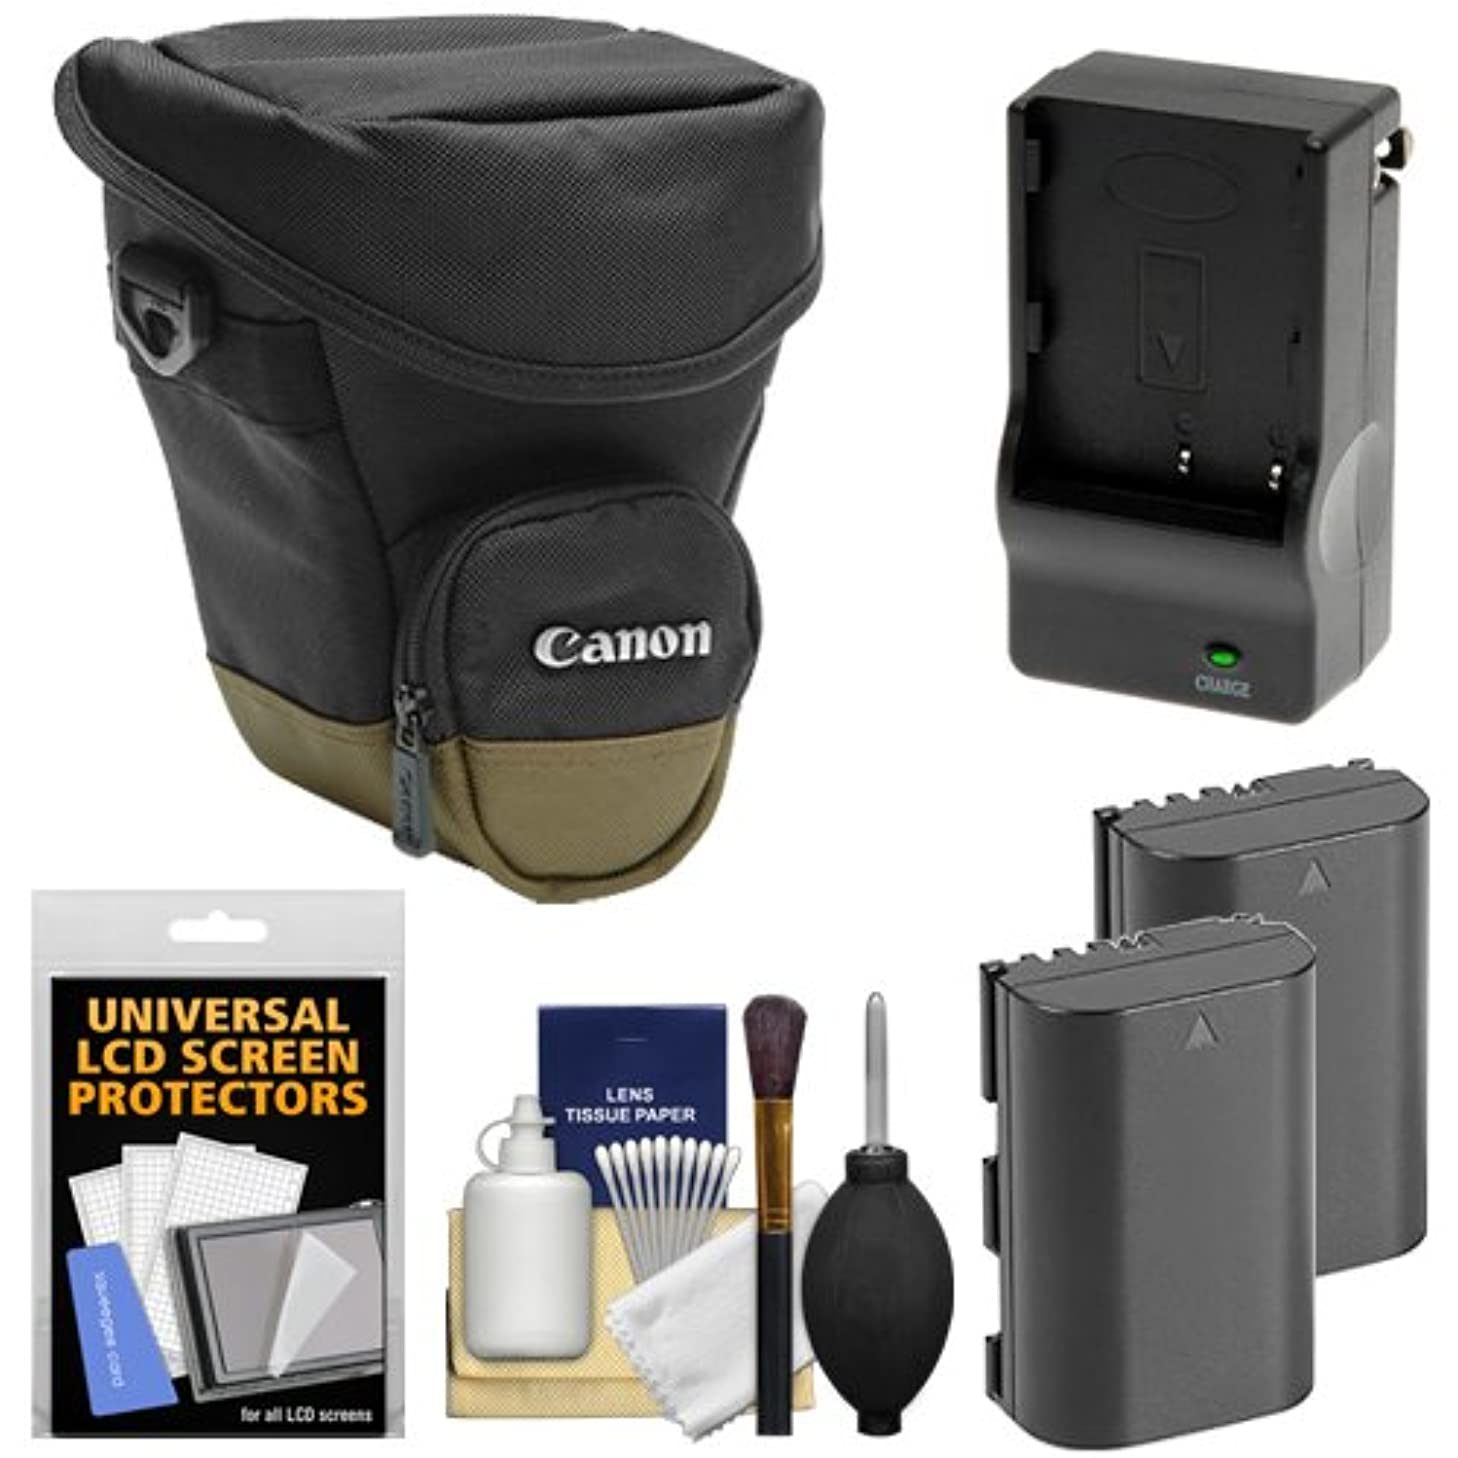 Canon Zoom Pack 1000 Digital SLR Camera Holster Case with (2) LP-E6 Batteries + Charger + Accessory Kit for EOS 6D, 7D, 70D, 5D Mark II III